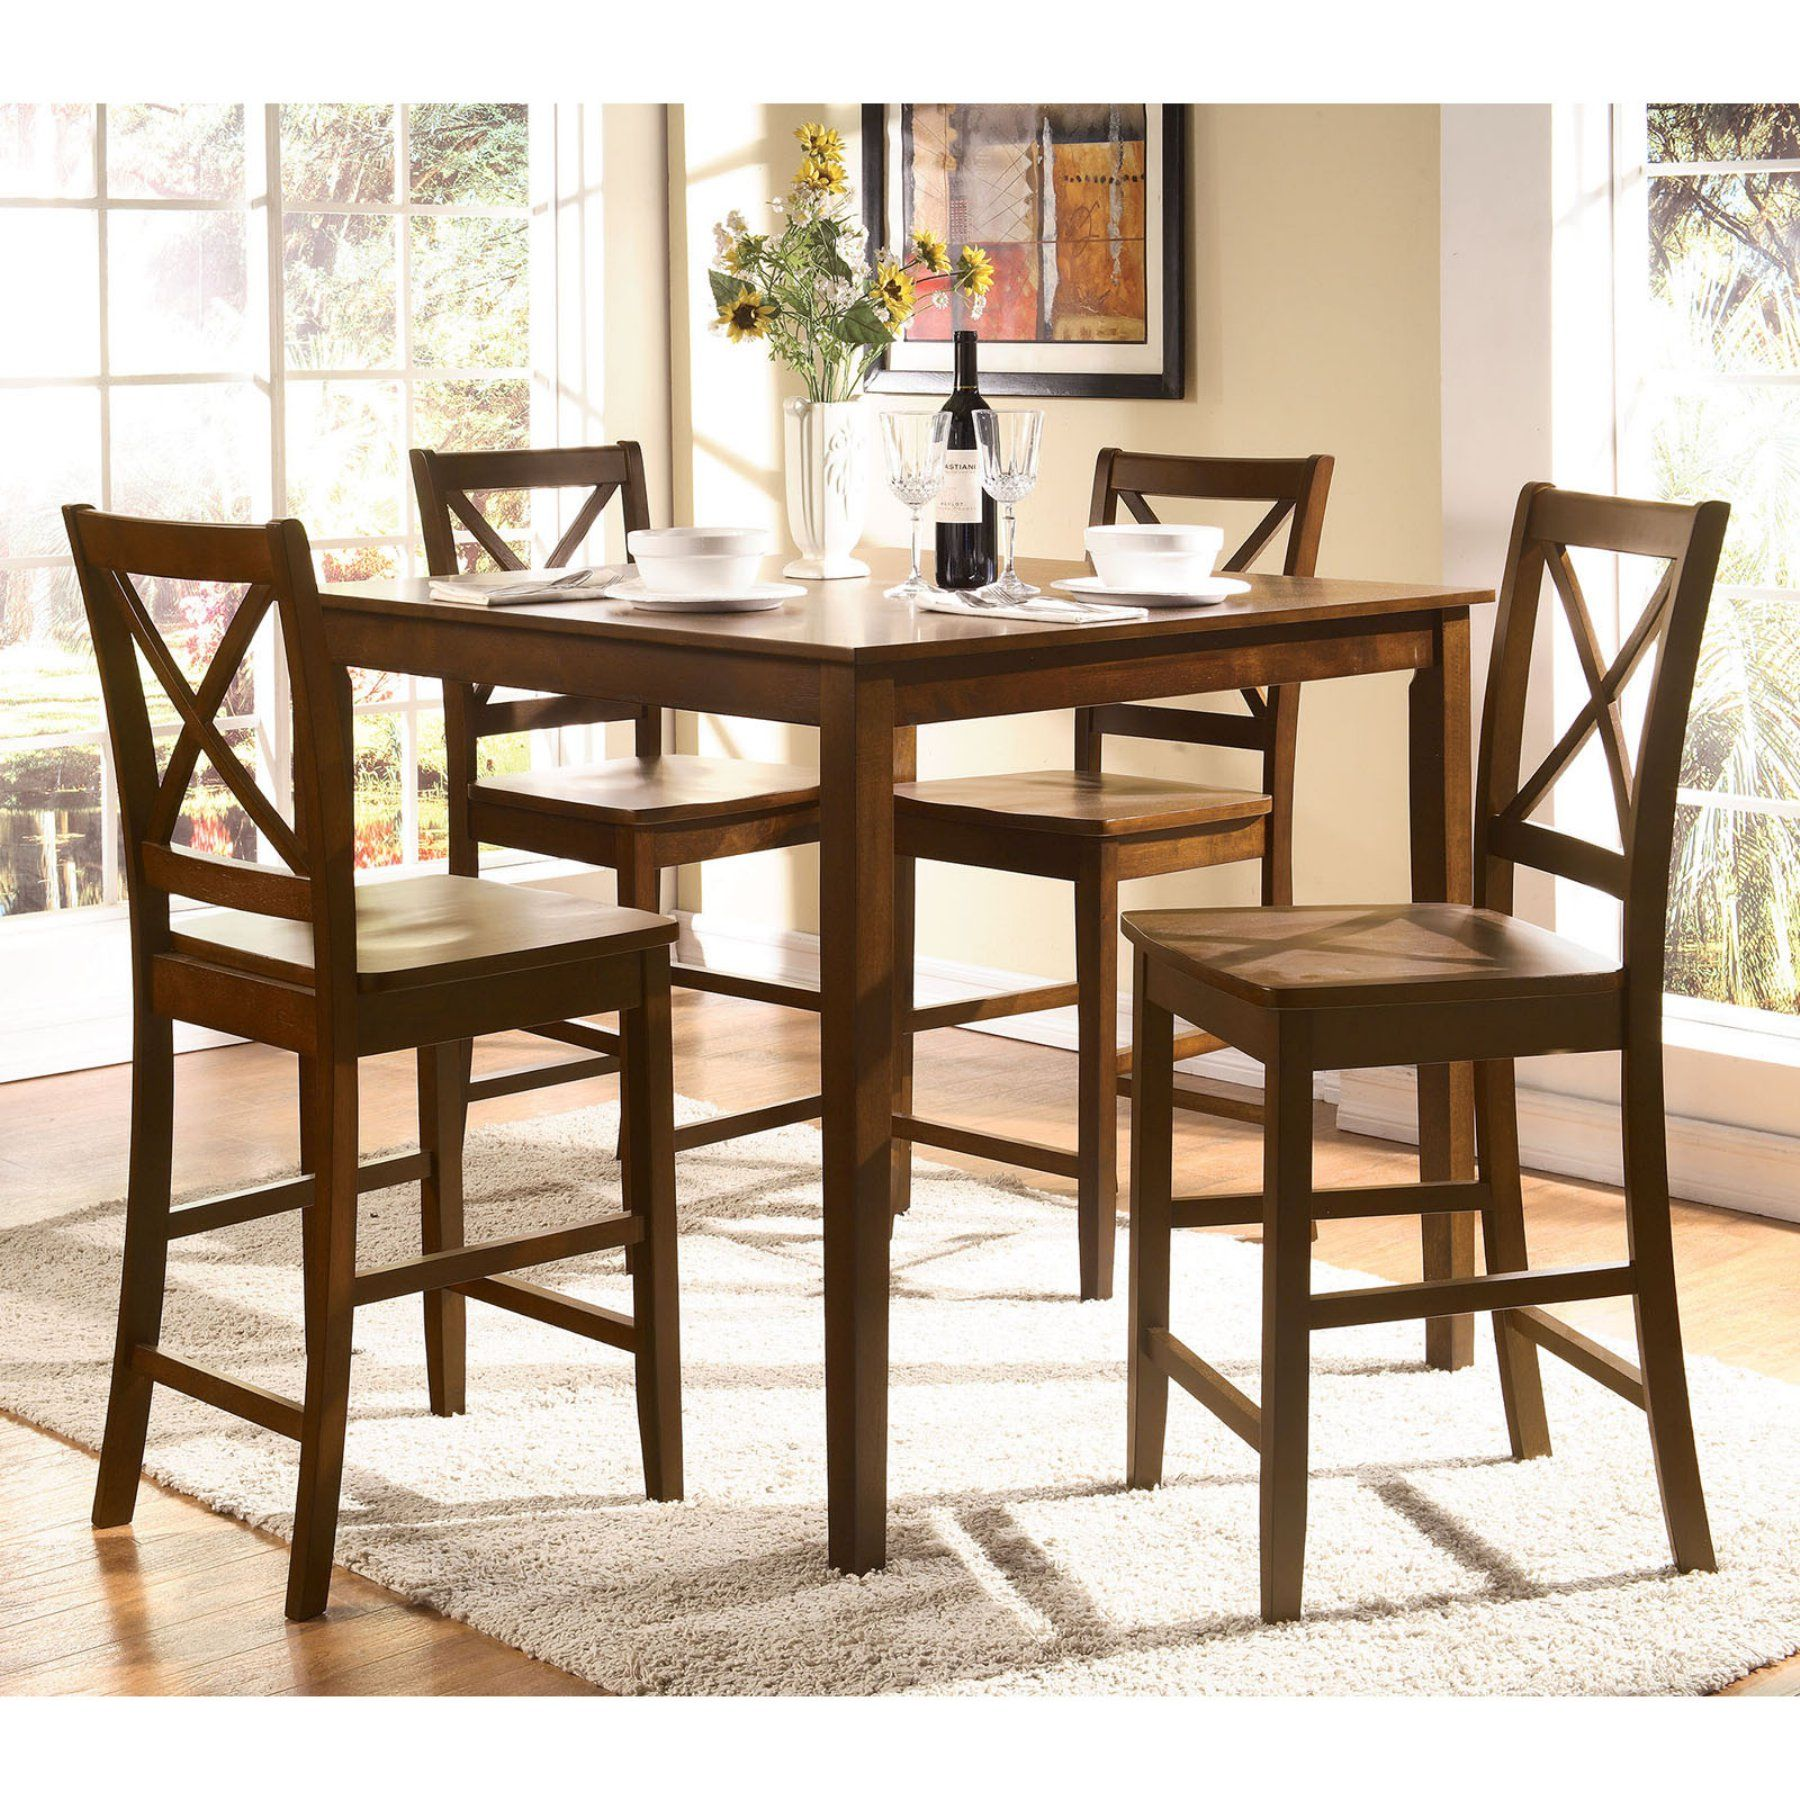 Acme Furniture Martha 5 Piece Counter Height Dining Table Set Interesting Acme Dining Room Set Decorating Inspiration